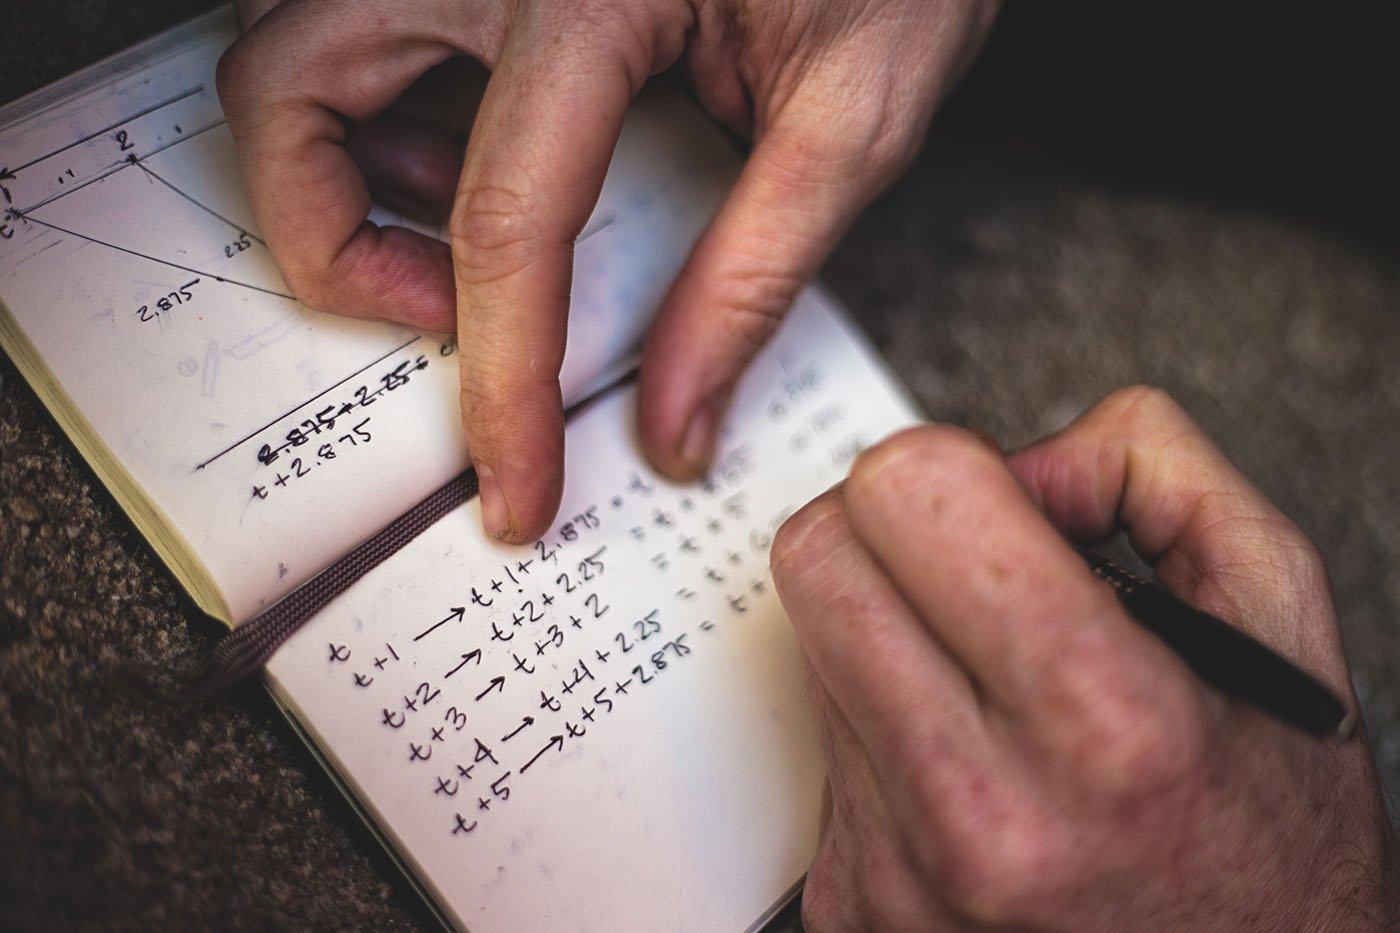 Art Photography: close up of a man taking notes in a notebook